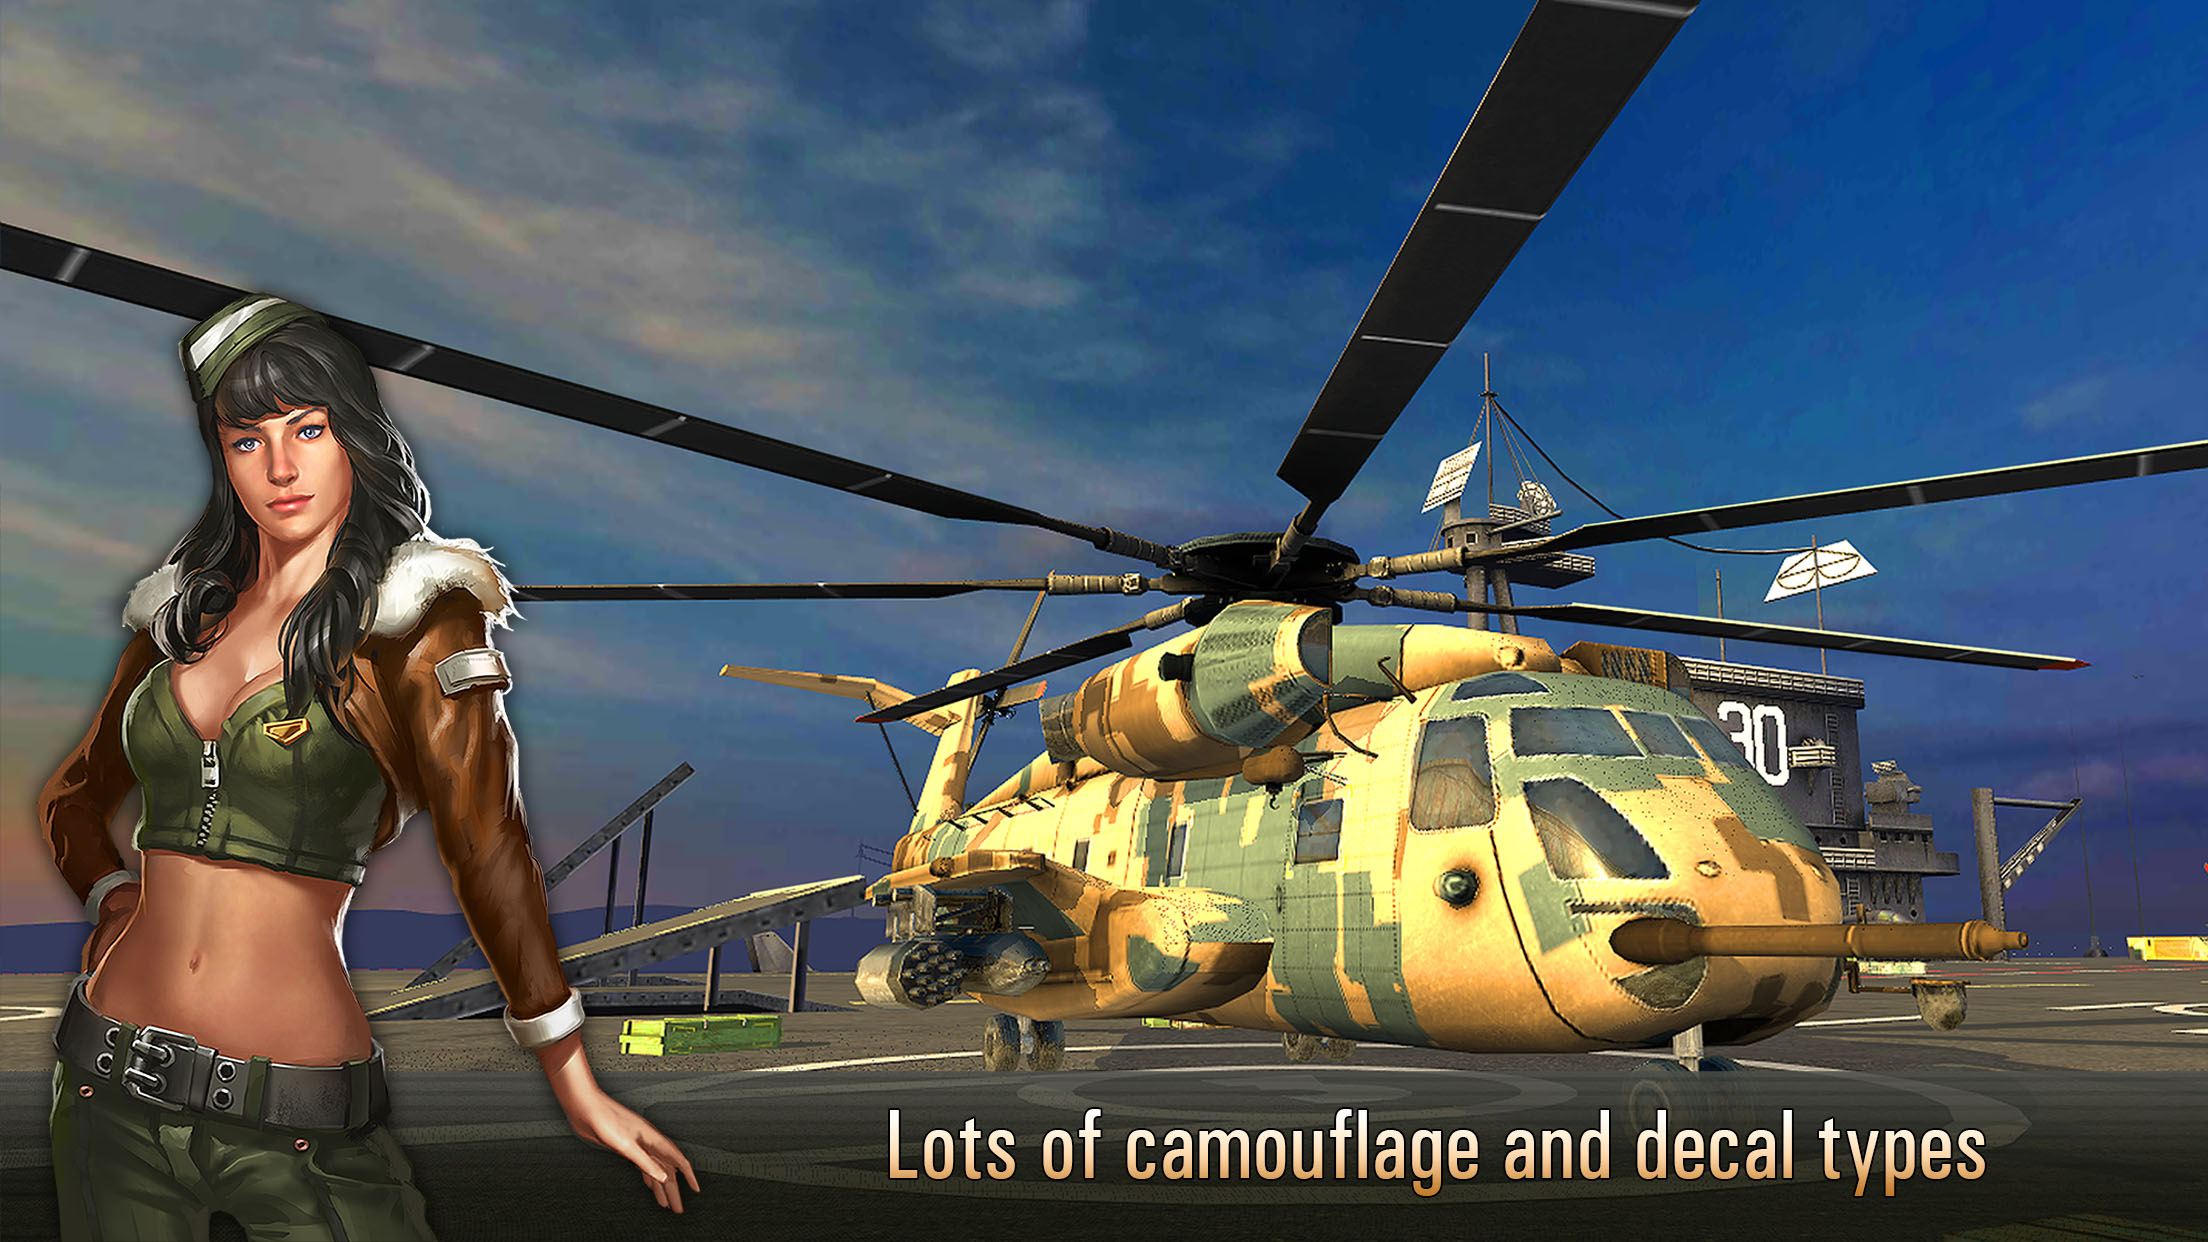 image 1 - battle of helicopters